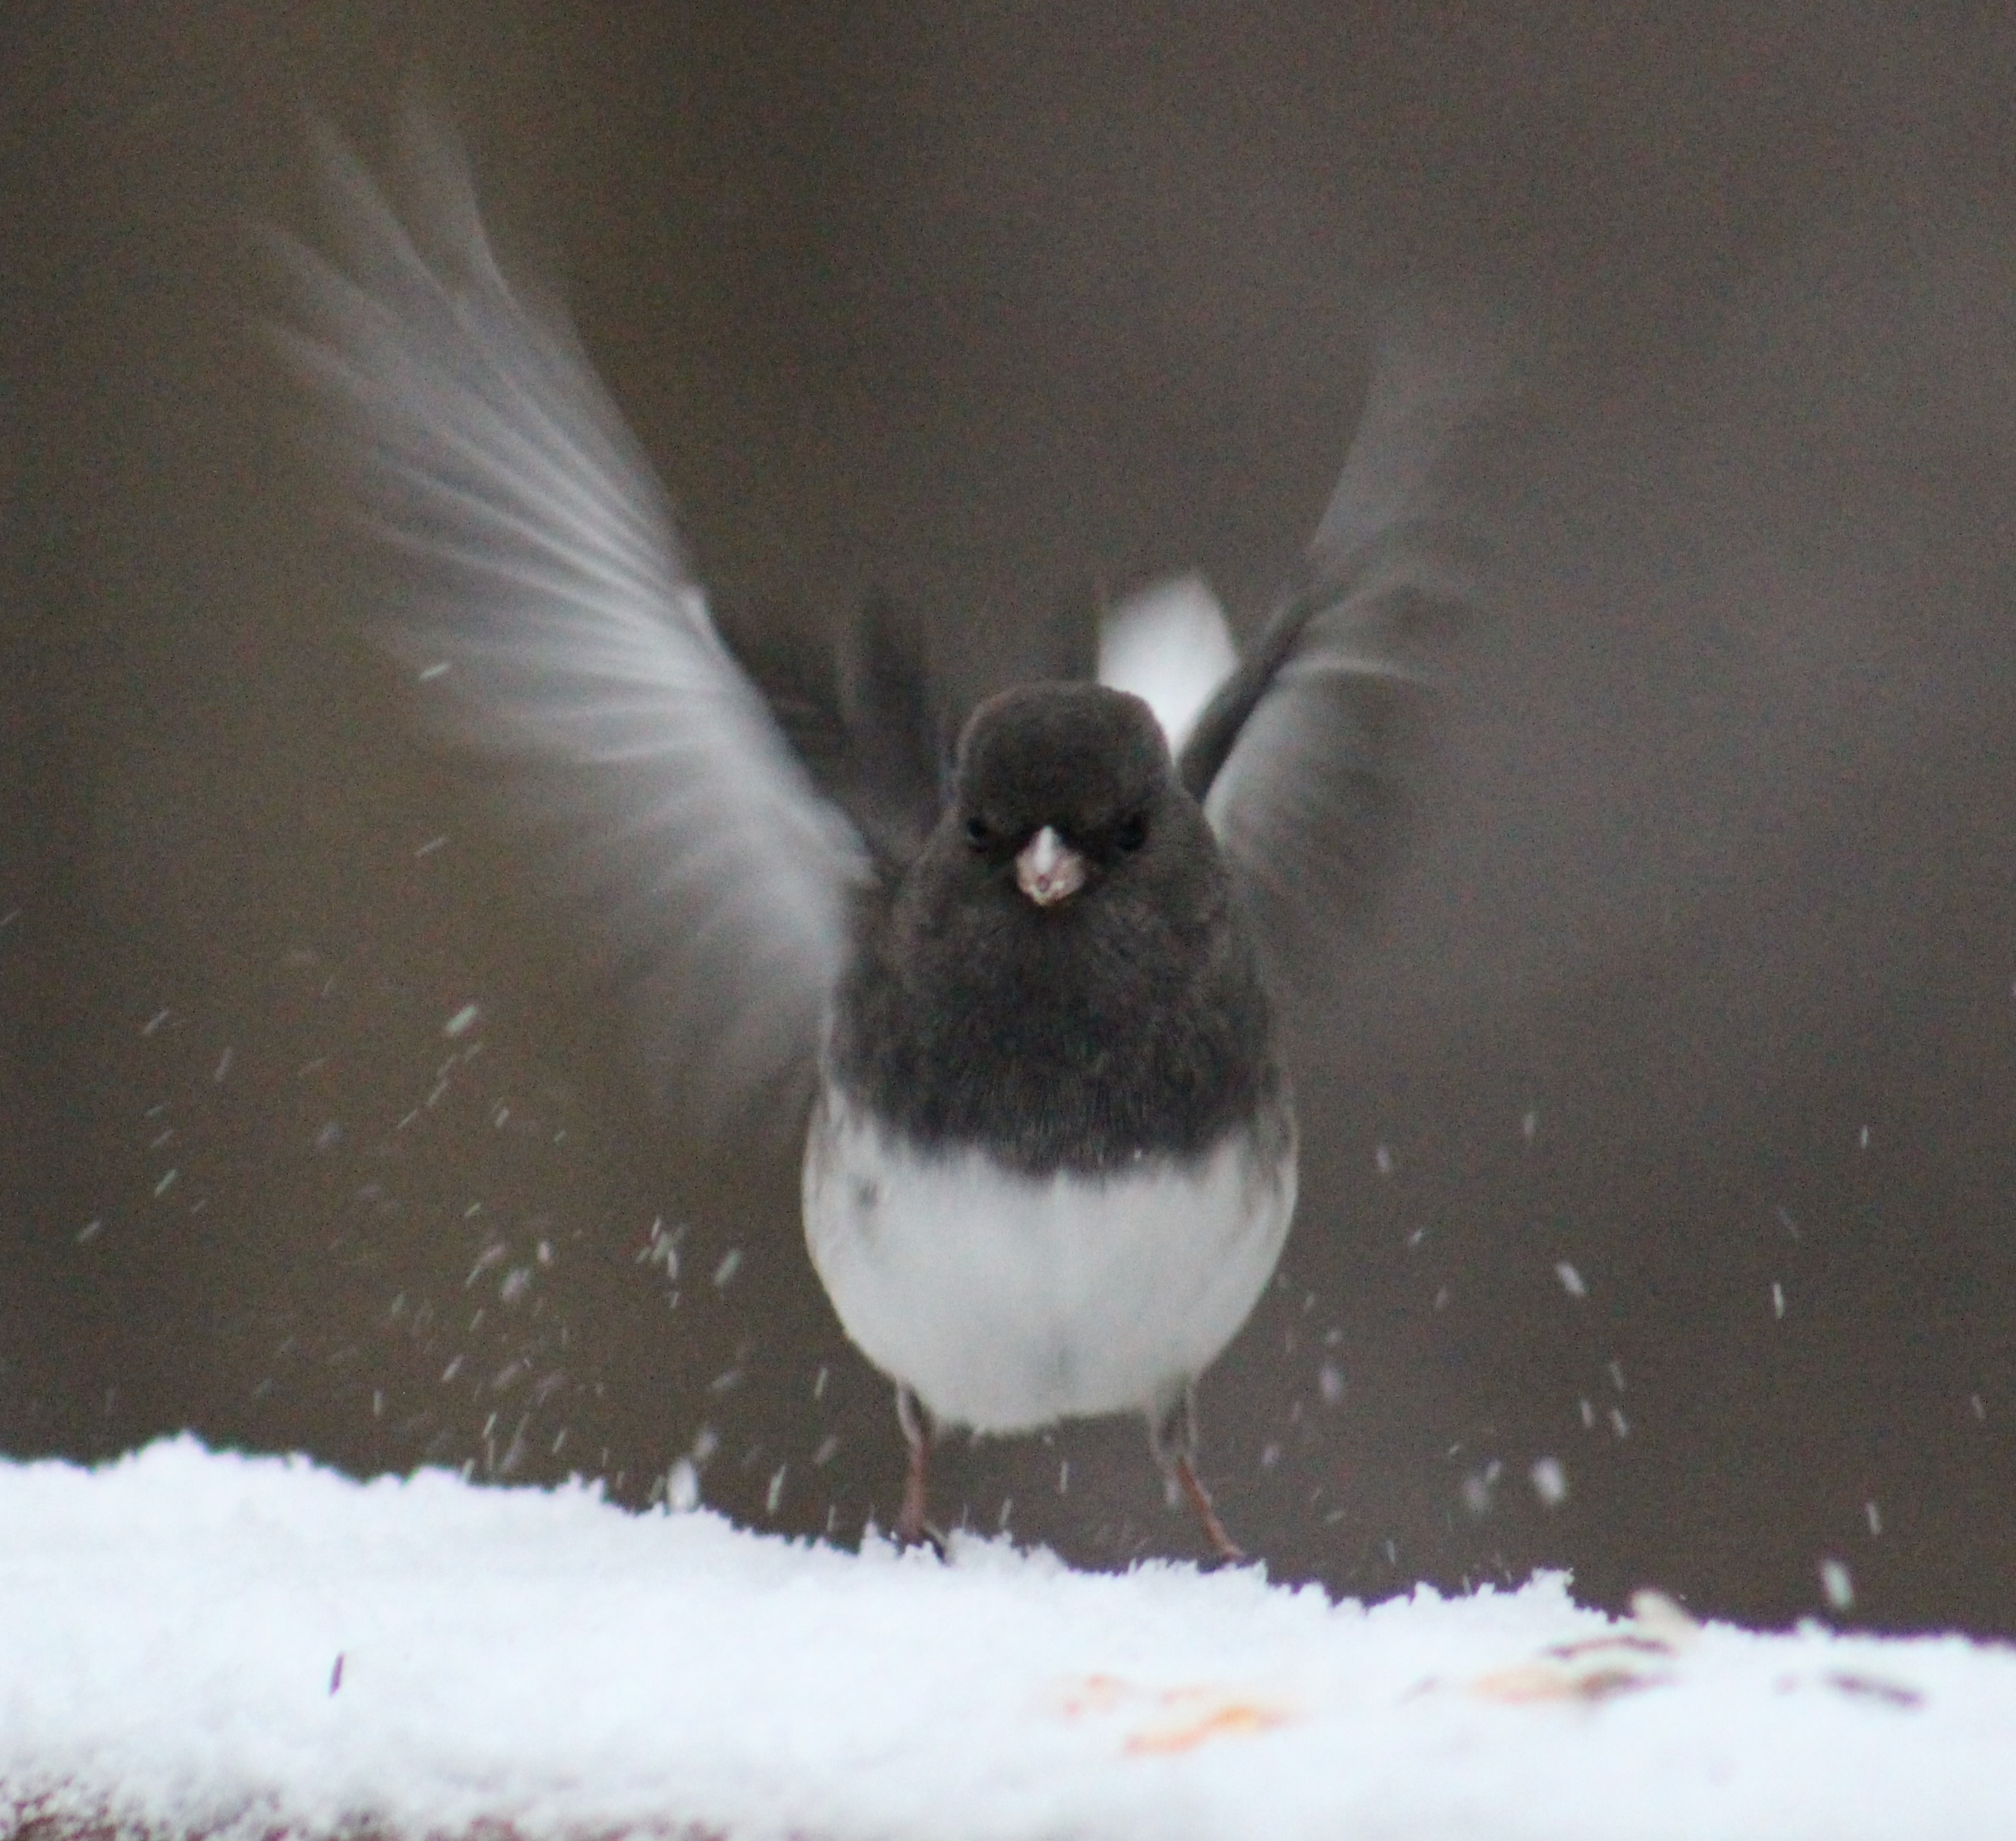 Junco alights on a snowy ledge